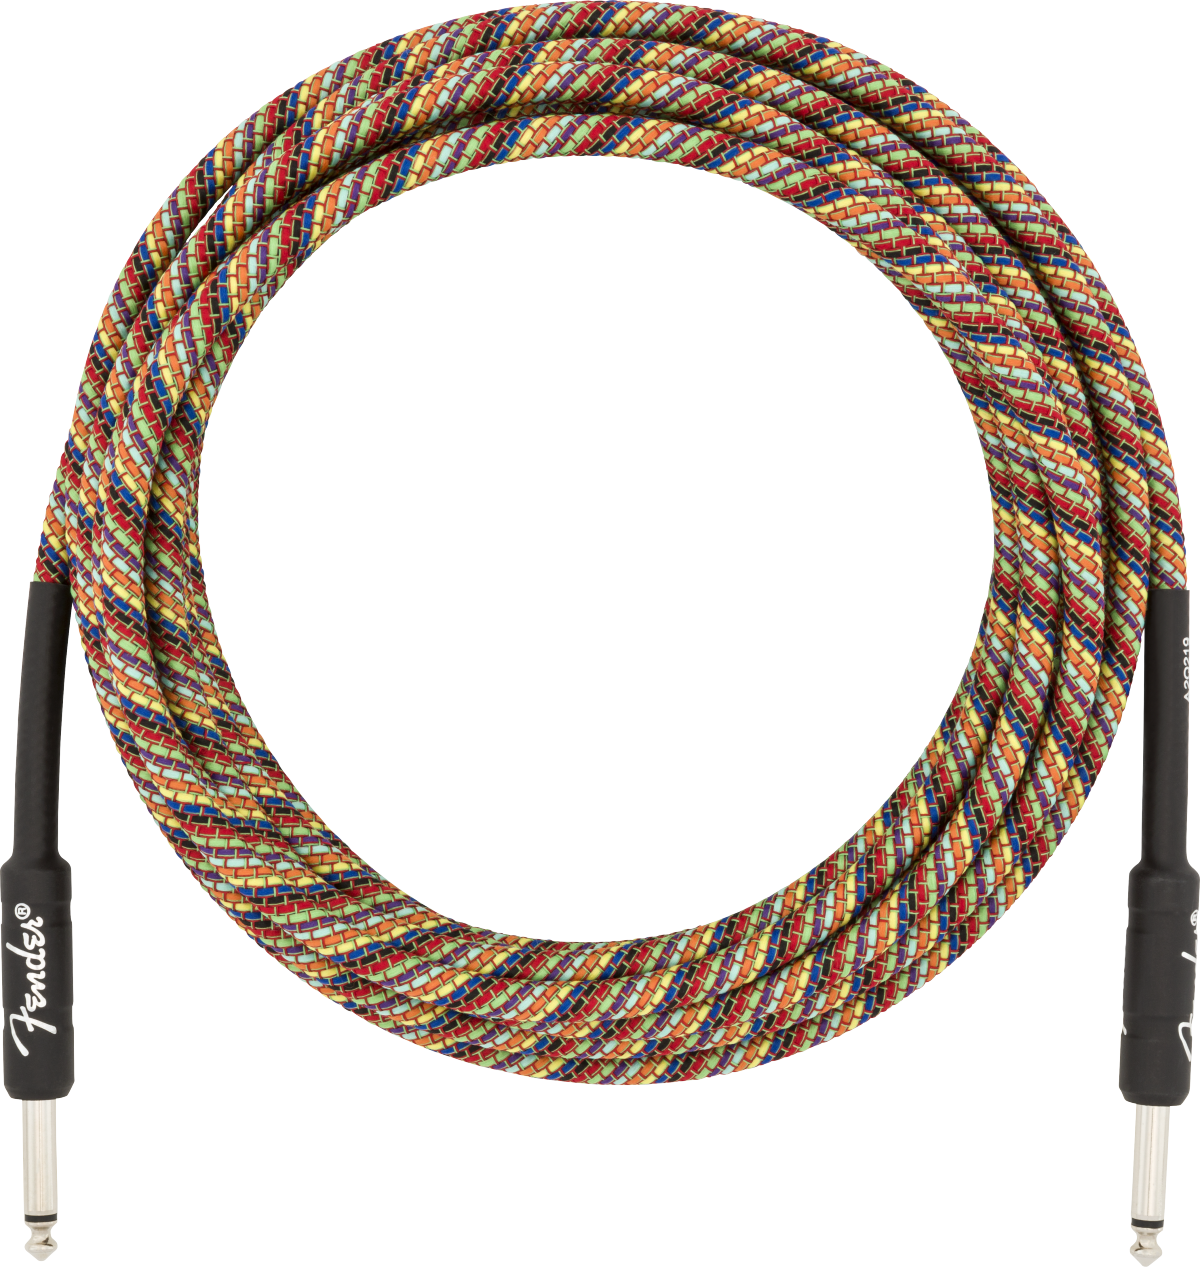 Fender 18.6' Festival Instrument Cable, Pure Hemp, Rainbow